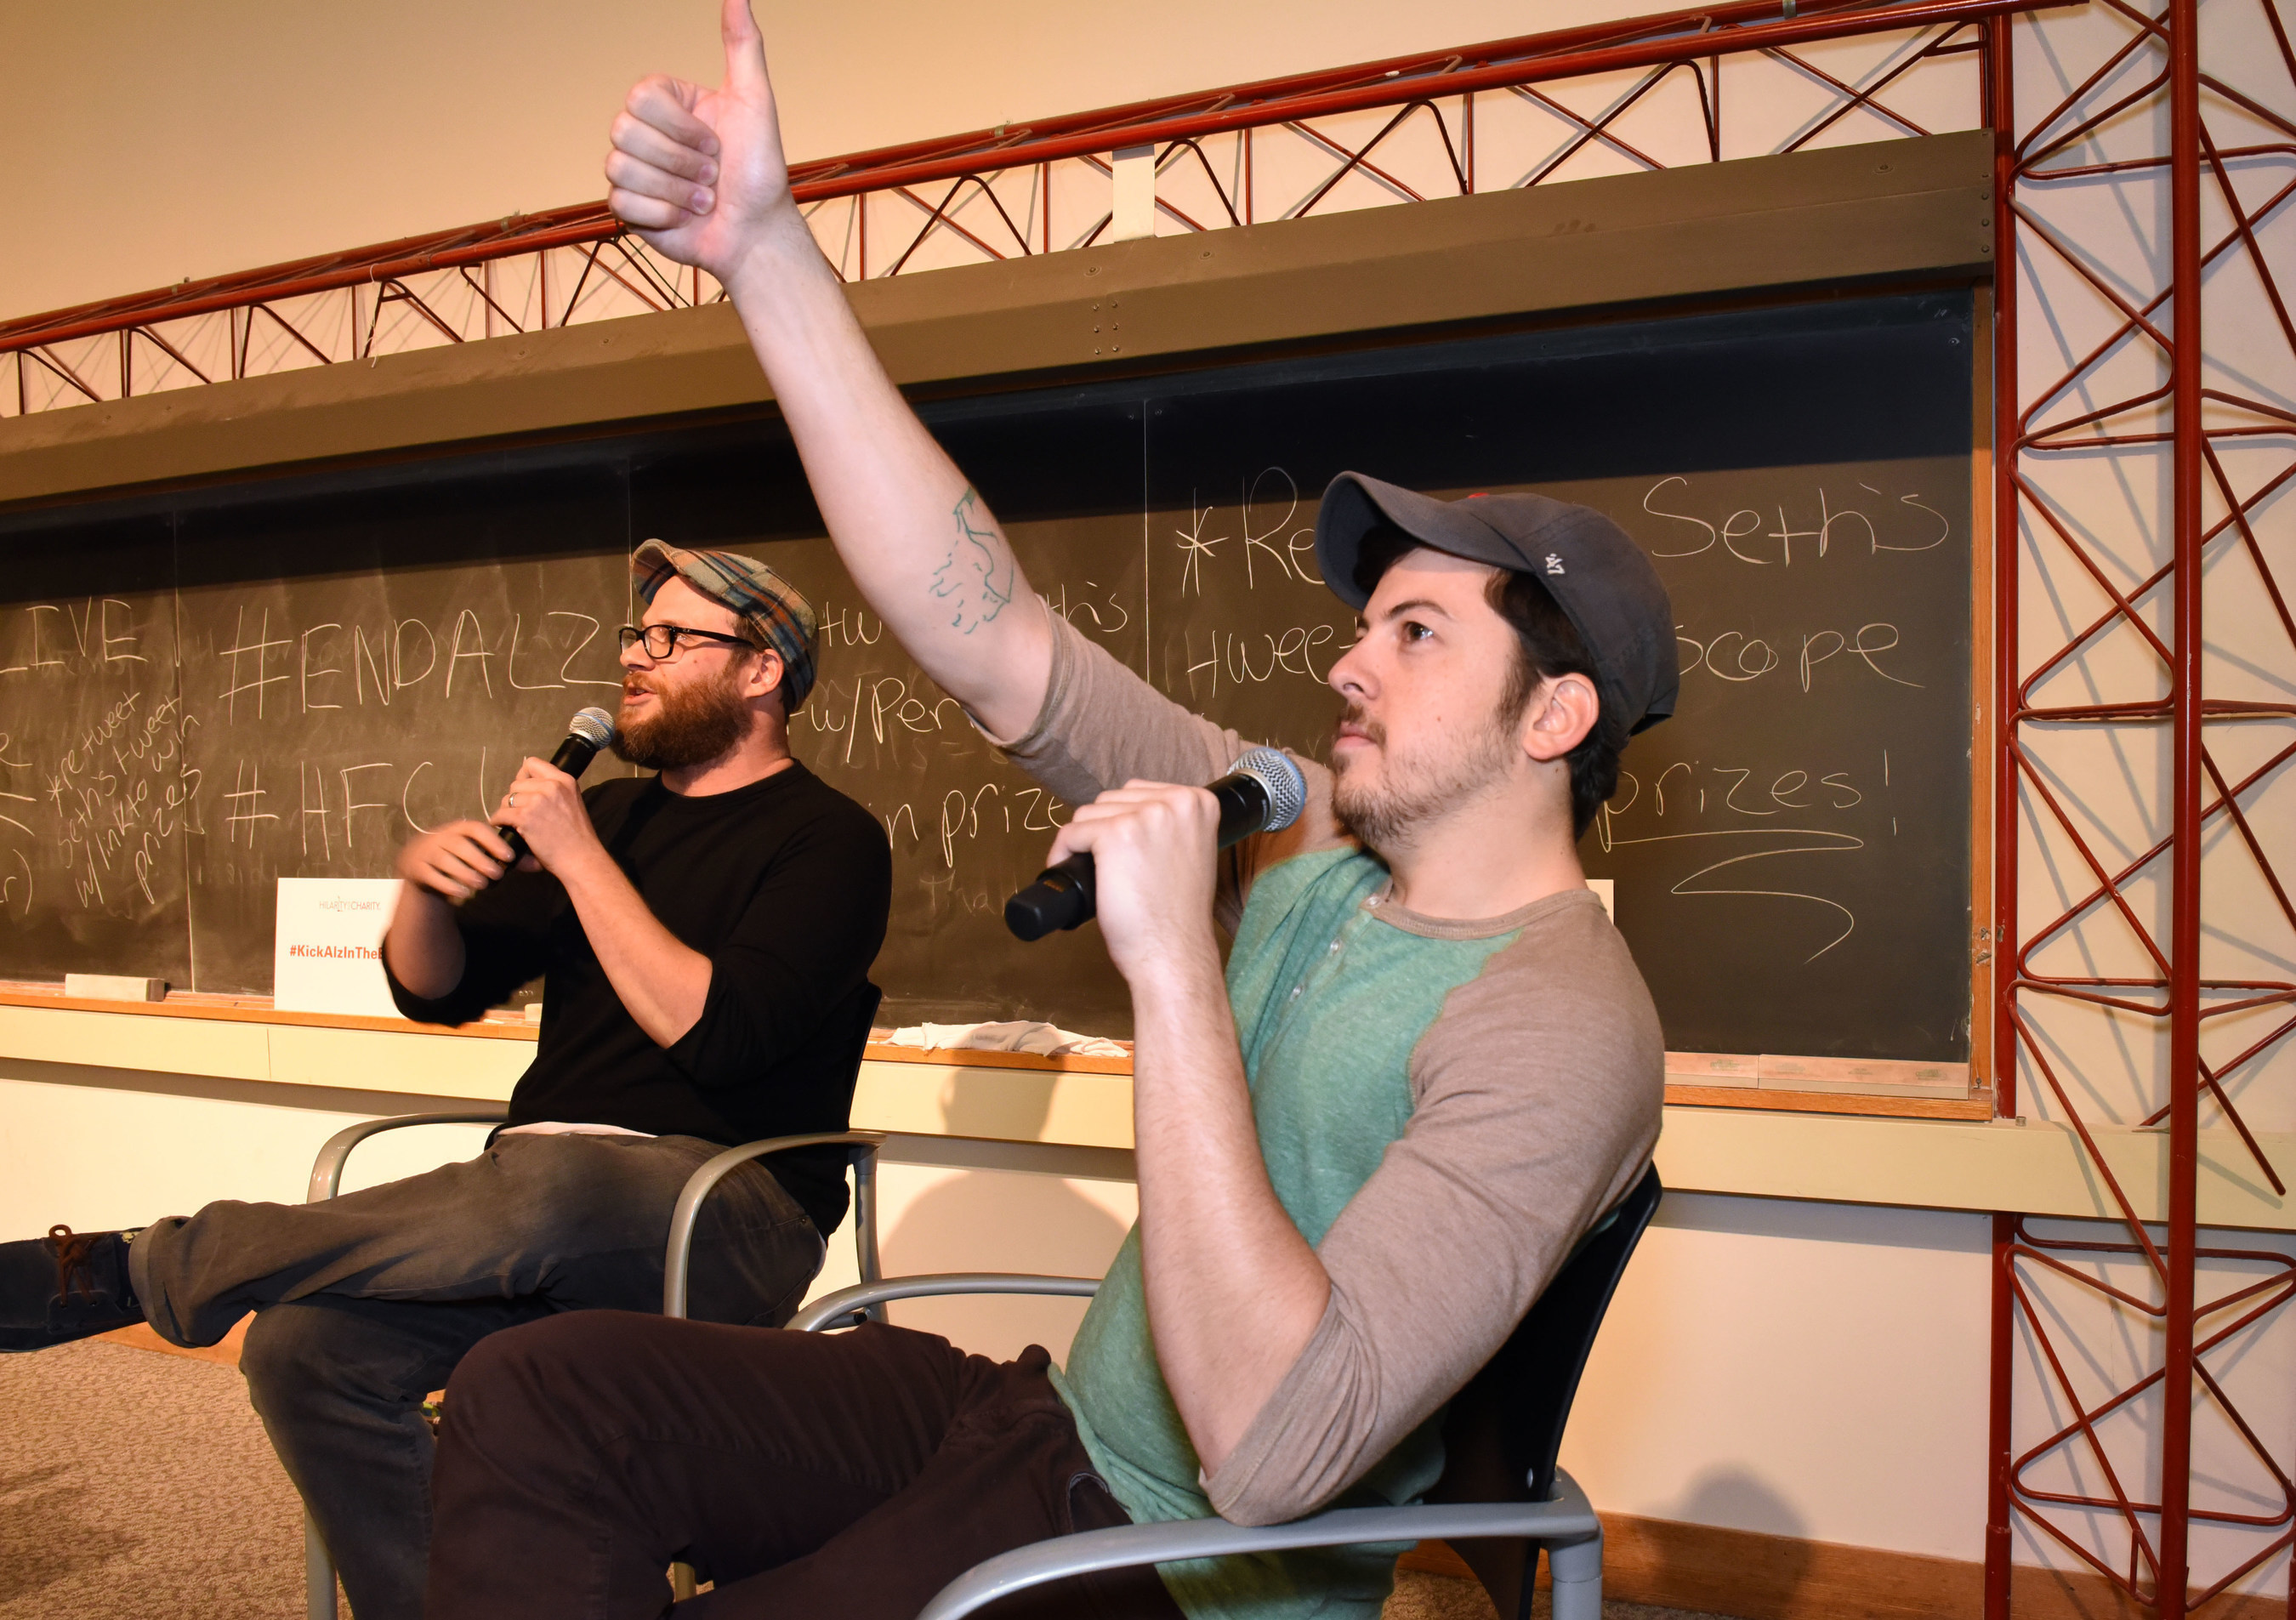 Actors Seth Rogen and Chris Mintz-Plasse provide live commentary during a special screening of their movie Superbad with this year's winners of Hilarity For Charity U - Pi Kappa Alpha fraternity and Alpha Chi Omega sorority at the University of Vermont on Saturday, April 25, 2015 in Burlington, Vt. UVM's Pi Kappa Alpha fraternity and Alpha Chi Omega sorority this year raised more than $30,000.00 for Hilarity for Charity U, benefiting the Alzheimer's Association. For more information please visit http://www.hilarityforcharity.org. (ALISON REDLICH/AP Images for Hilarity For Charity U)